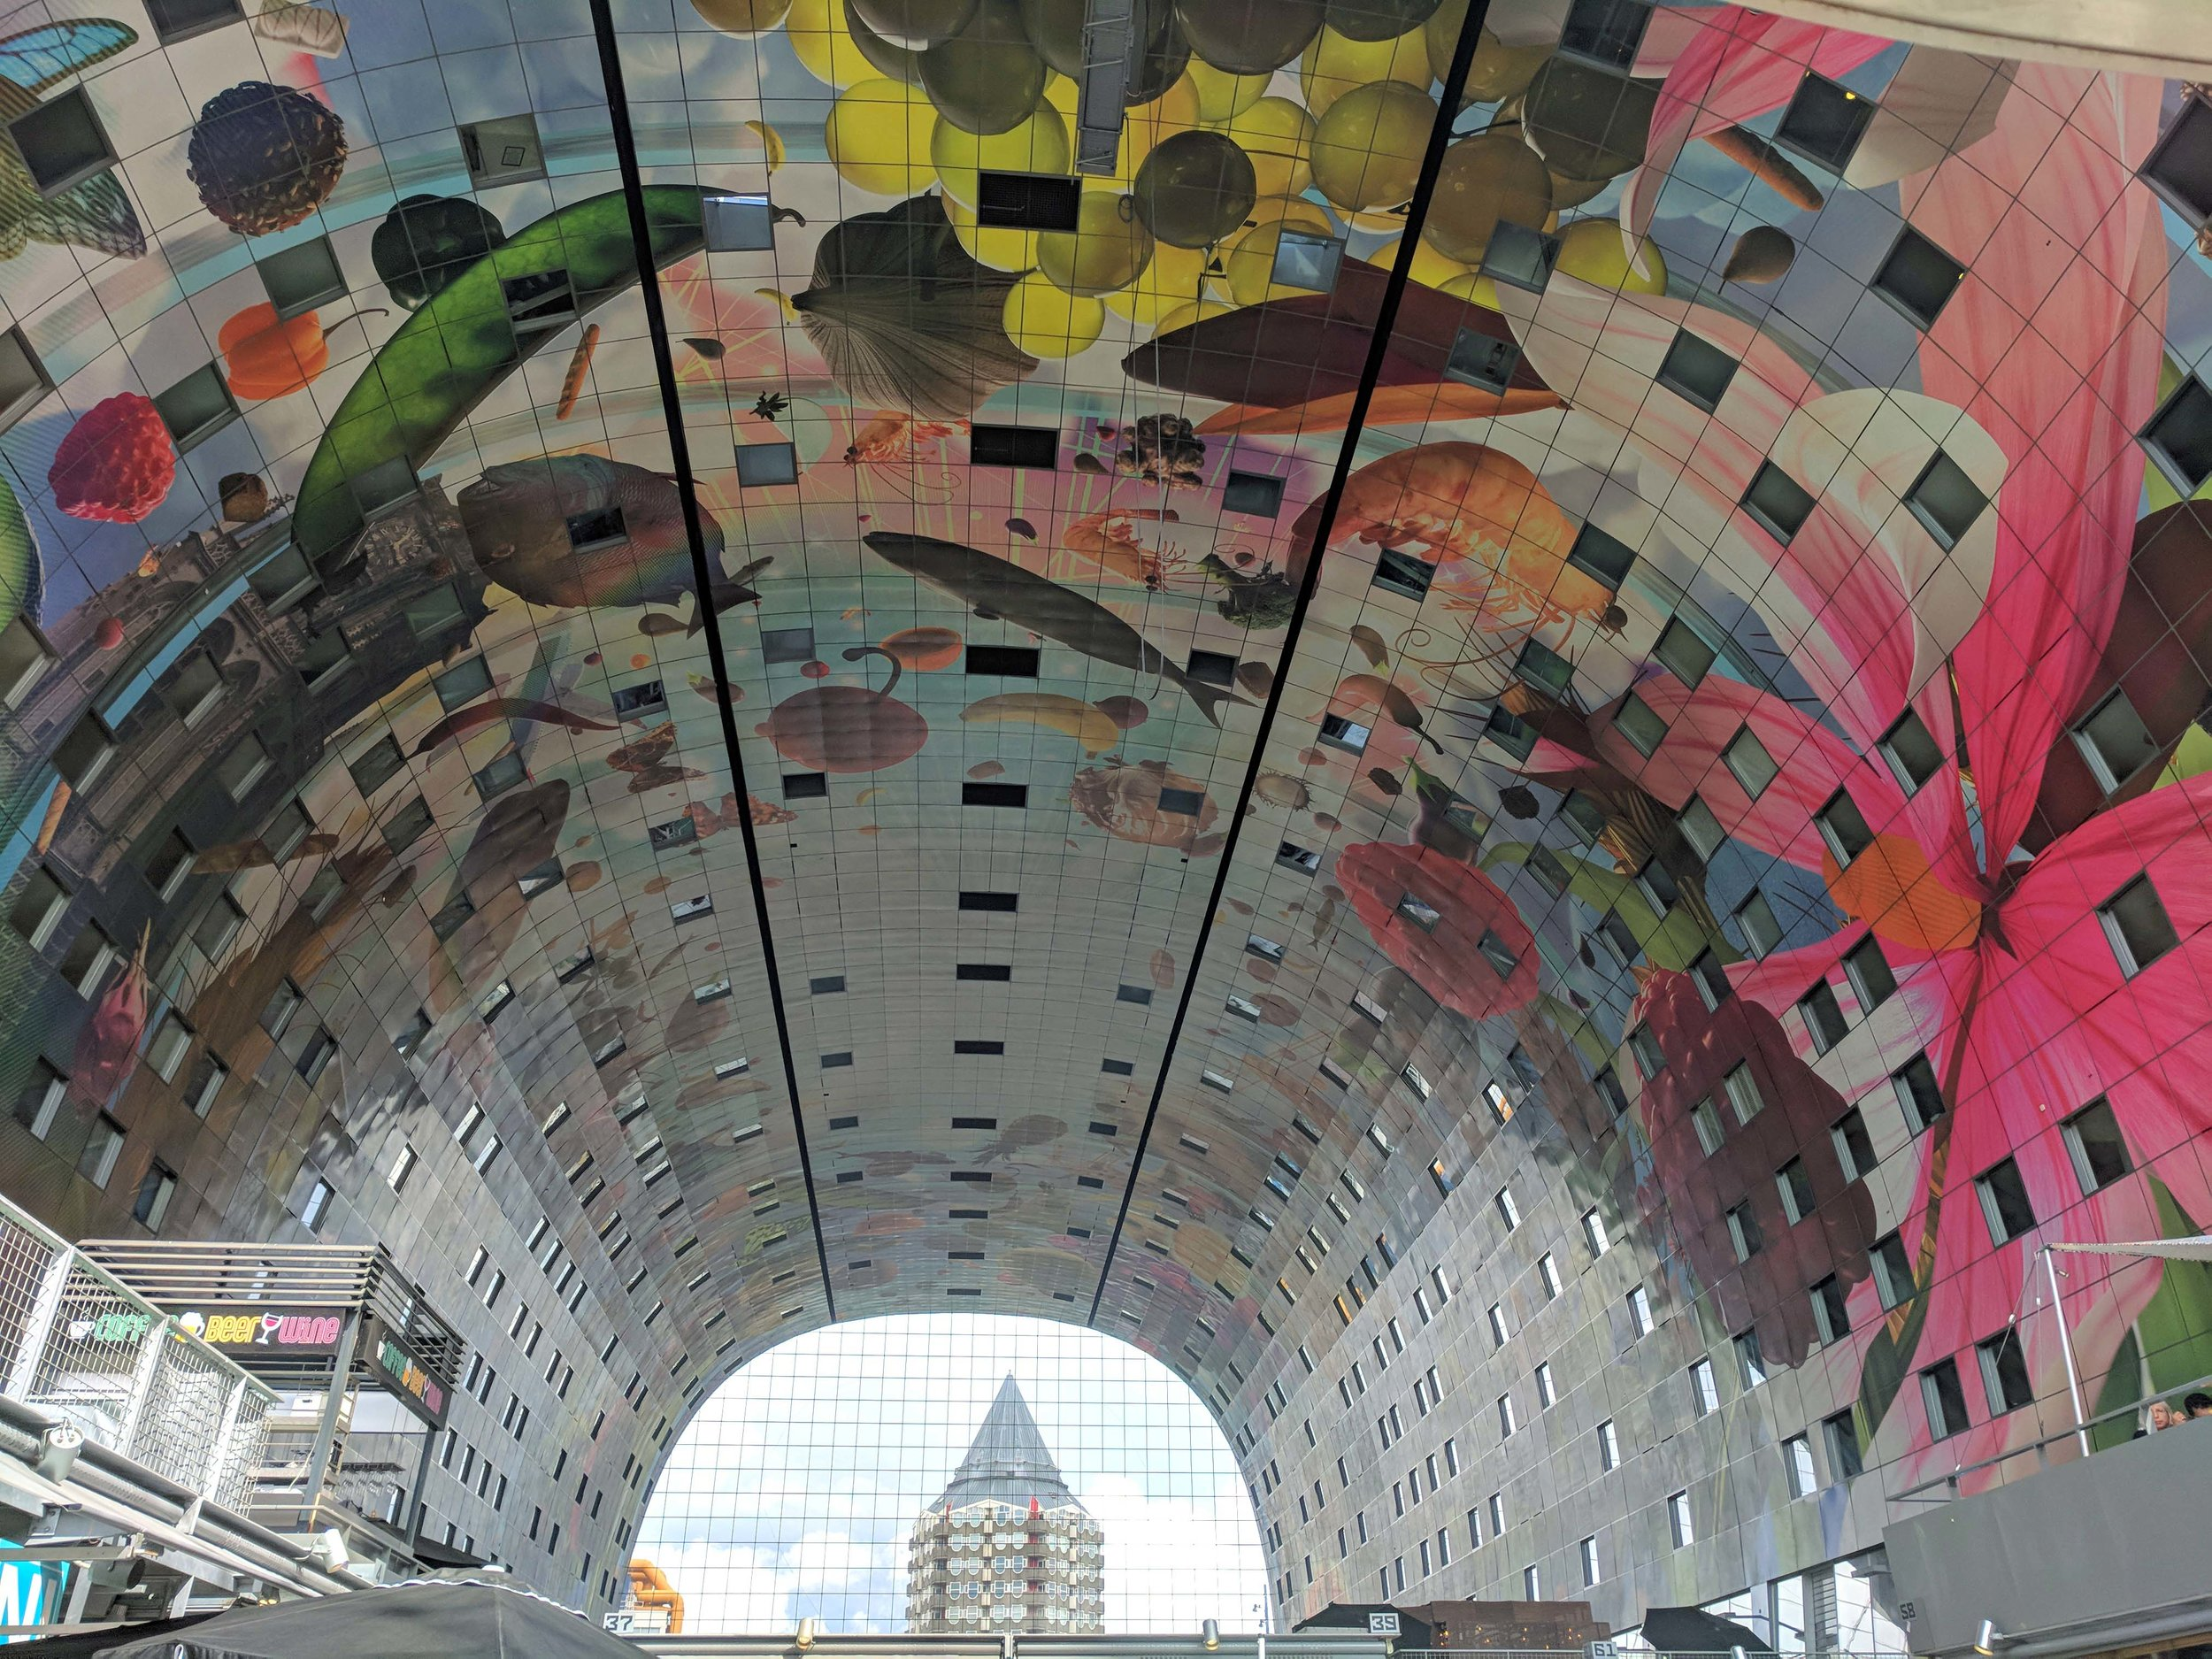 Inside the magnificent Markthal